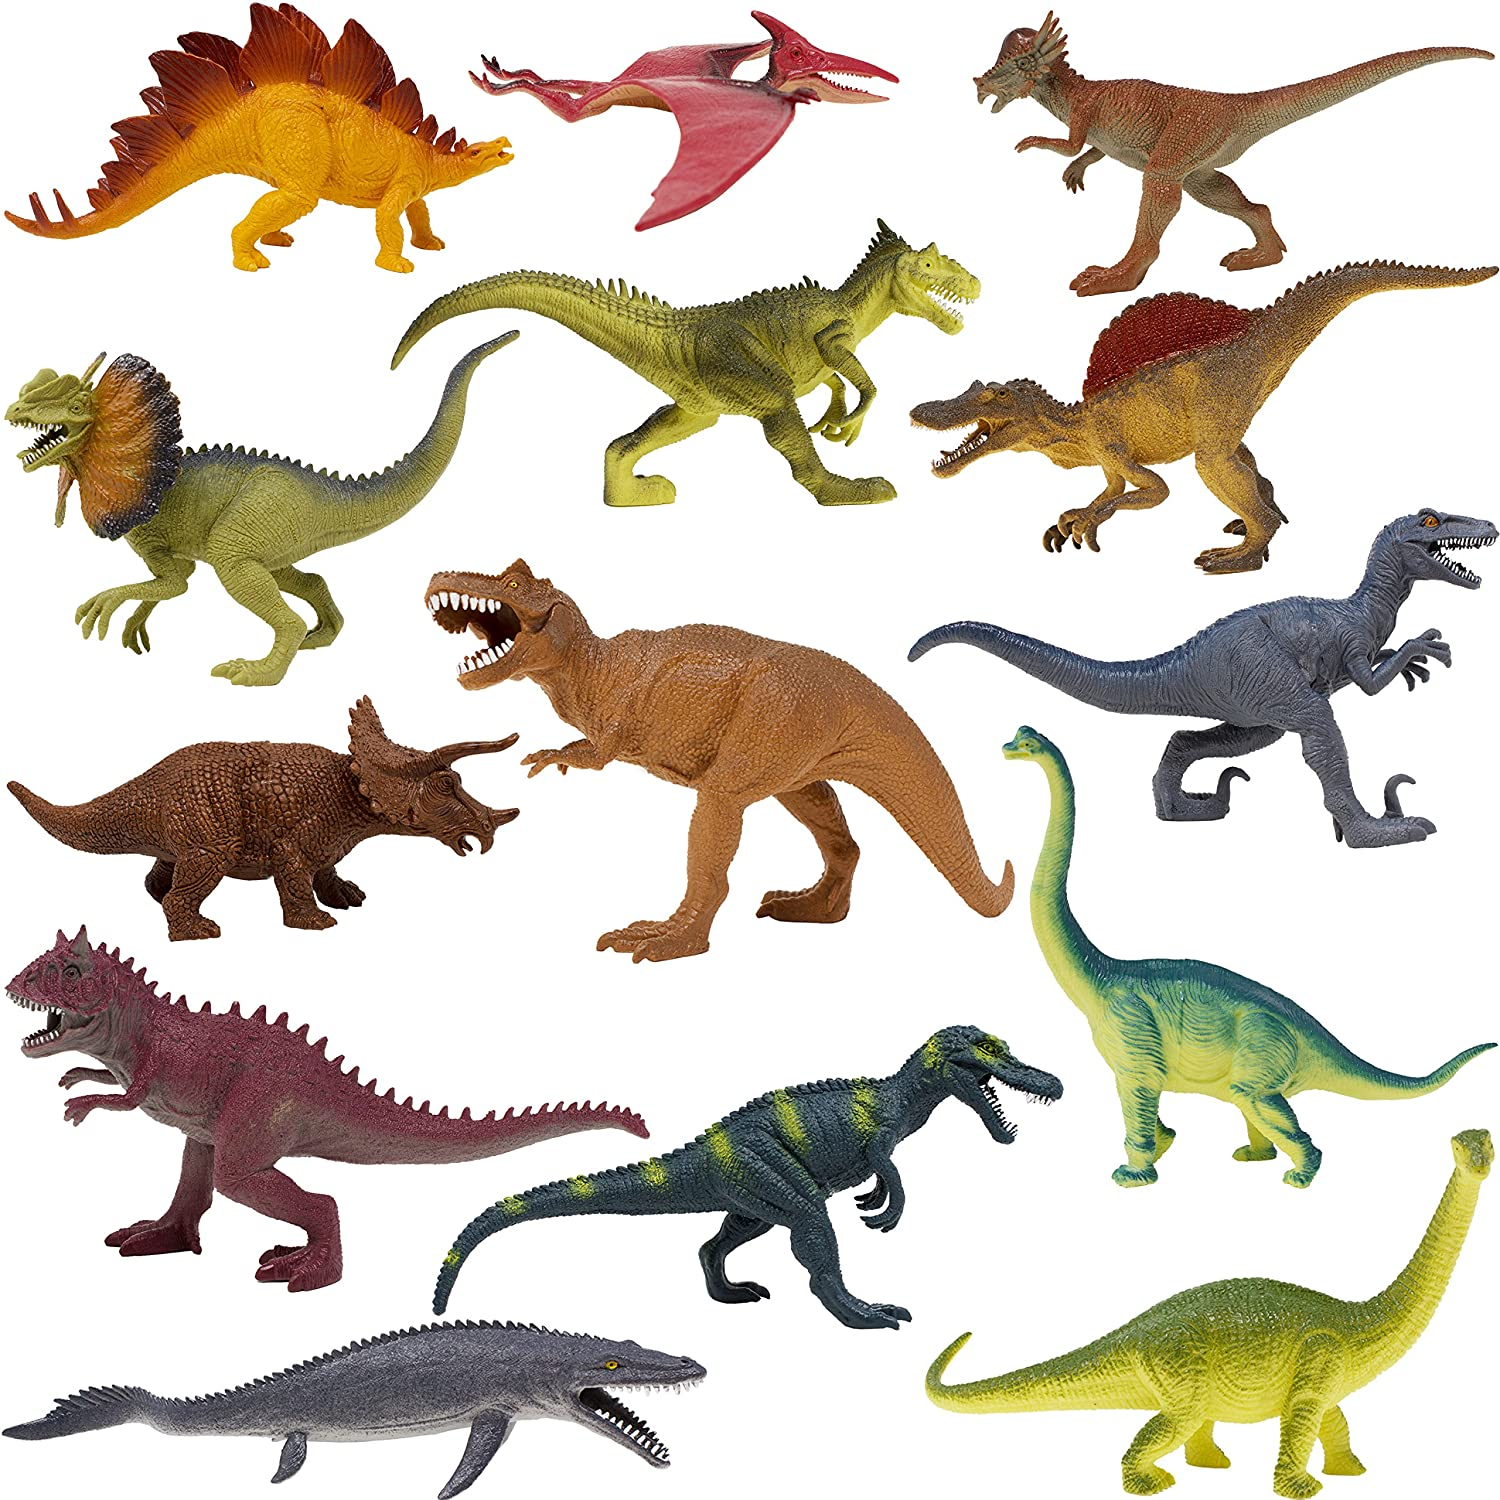 "Boley 14 Pack 10"" Educational Dinosaur Toys - Realistic Educational Toy Jurassic Dinosaur Figures for Kids, Children, Toddlers - Great Gift Set, Birthday Present, or Party Favor!"